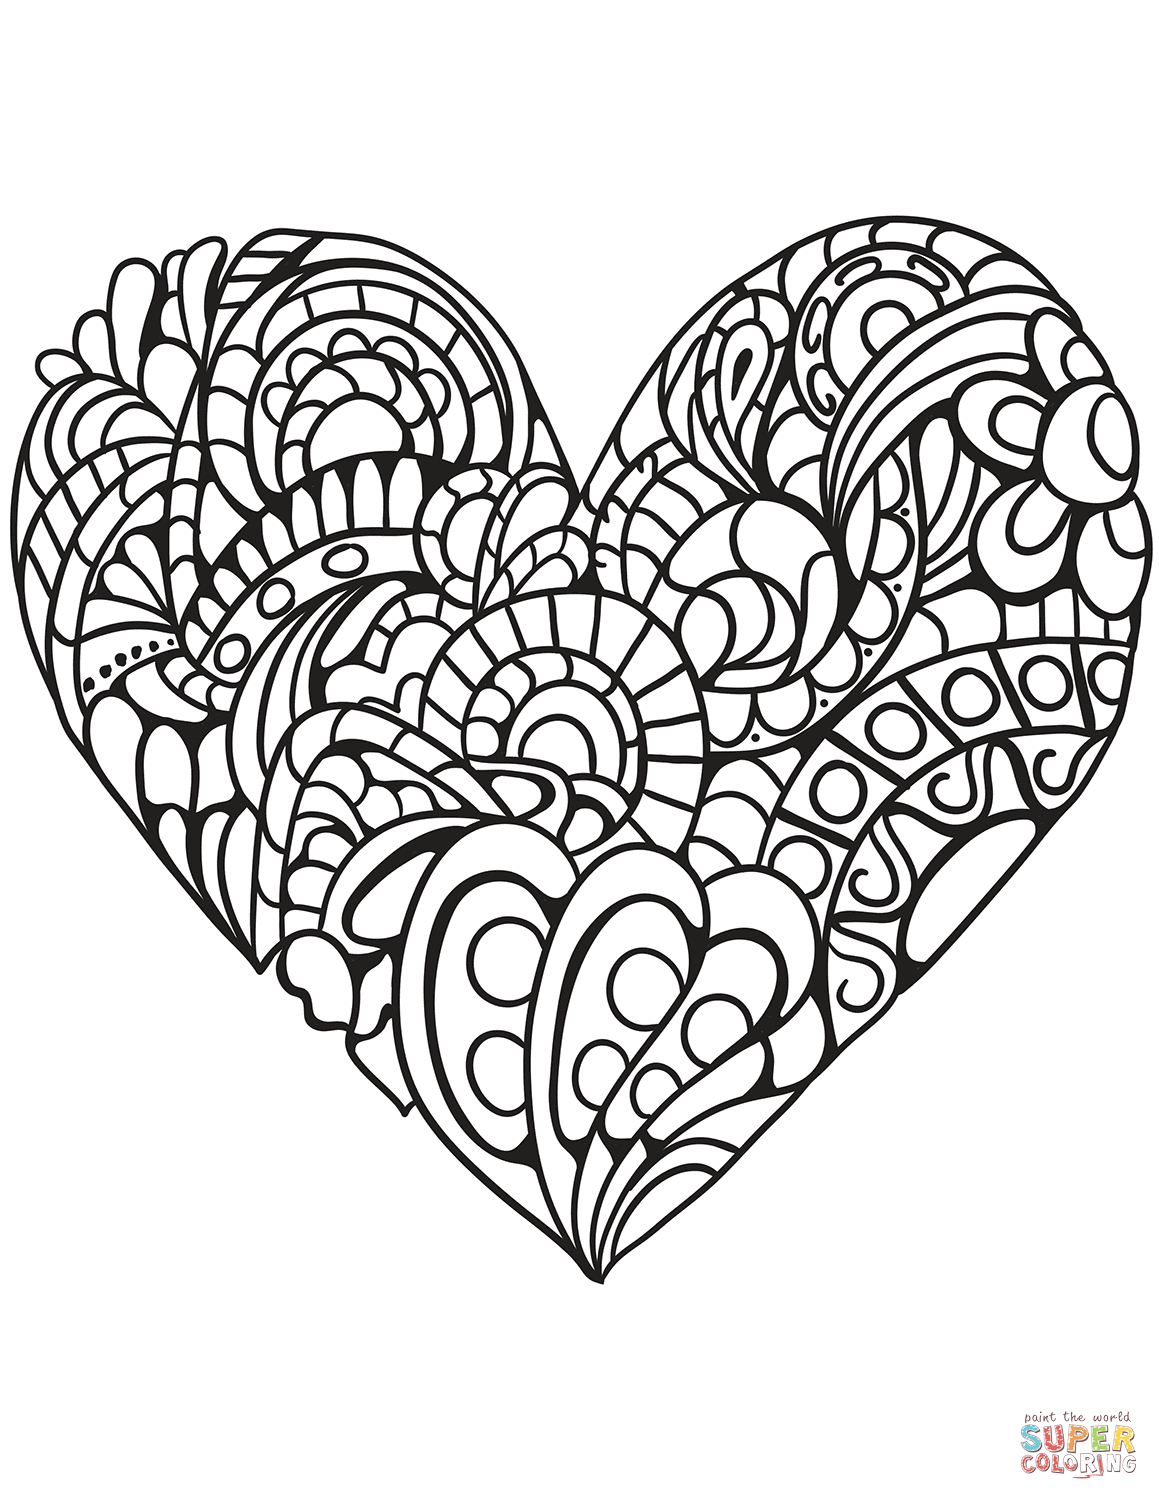 Zentangle Heart Coloring Page | Free Printable Coloring Pages - Free Printable Heart Coloring Pages